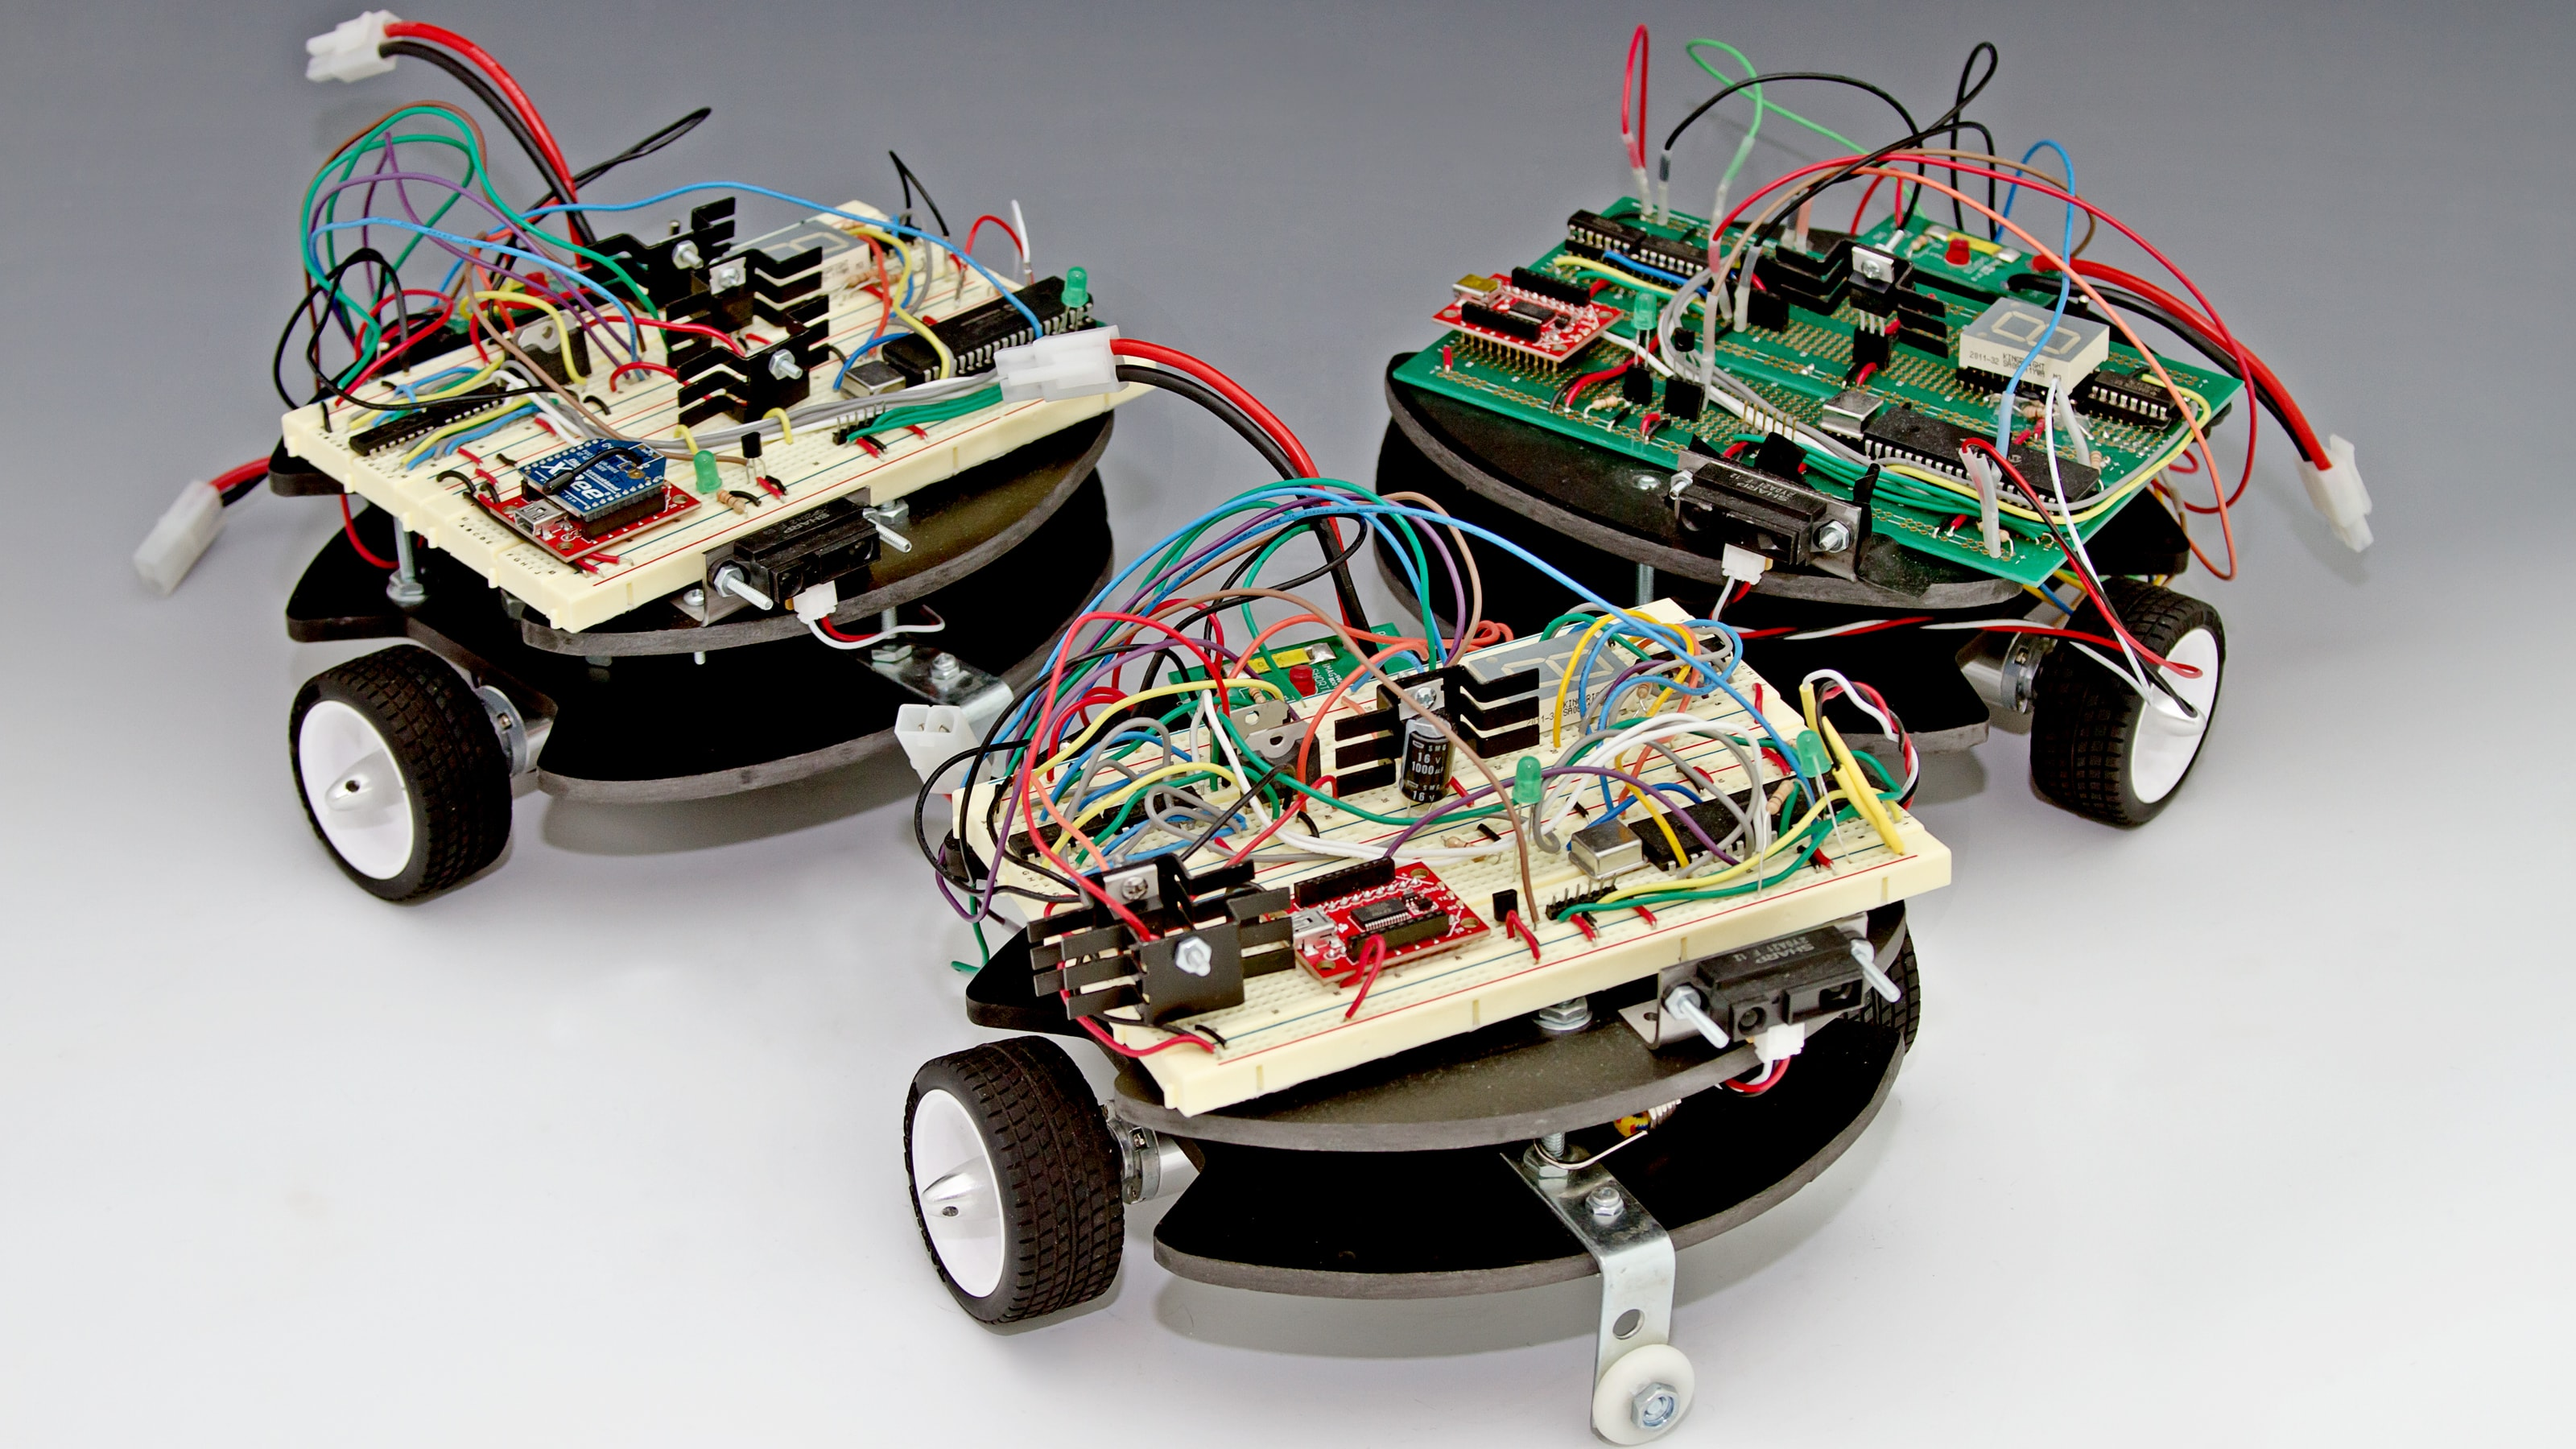 Three square robots with rounded fronts, black and white wheels and exposed circuitry.